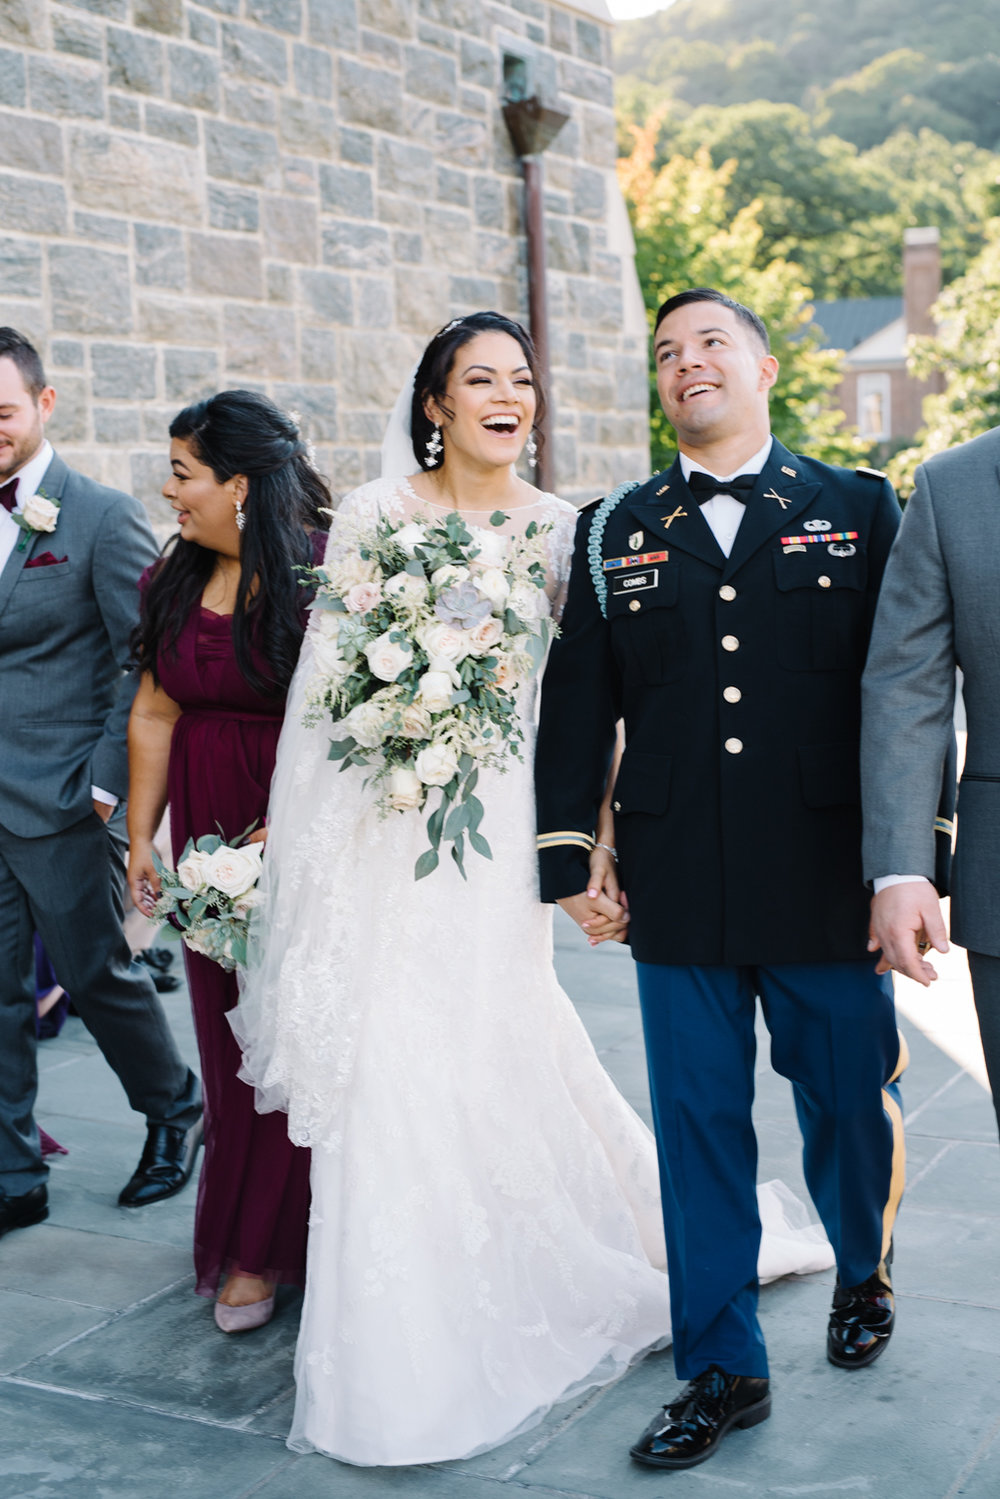 West Point Wedding- Mari + Dalton- New Jersey New York Wedding Photographer Olivia Christina Photo-142.jpg